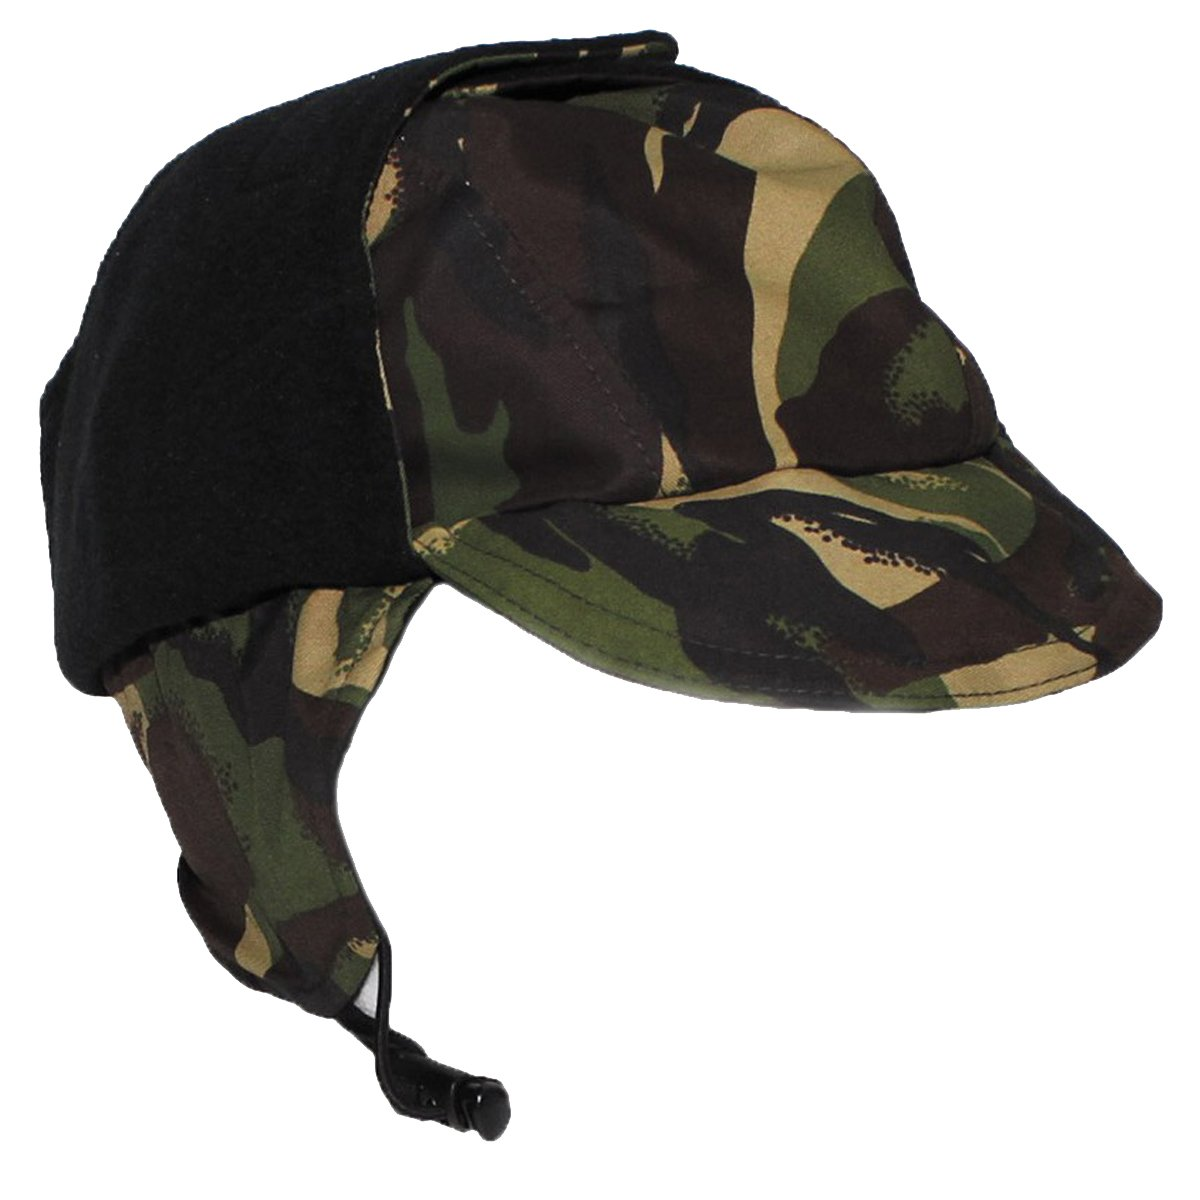 de900a22 VIZ-UK WEAR Genuine British Army DPM Camo Waterproof Gore TEX Hat Lined  Cold Weather Cap Grade 1: Amazon.co.uk: Clothing